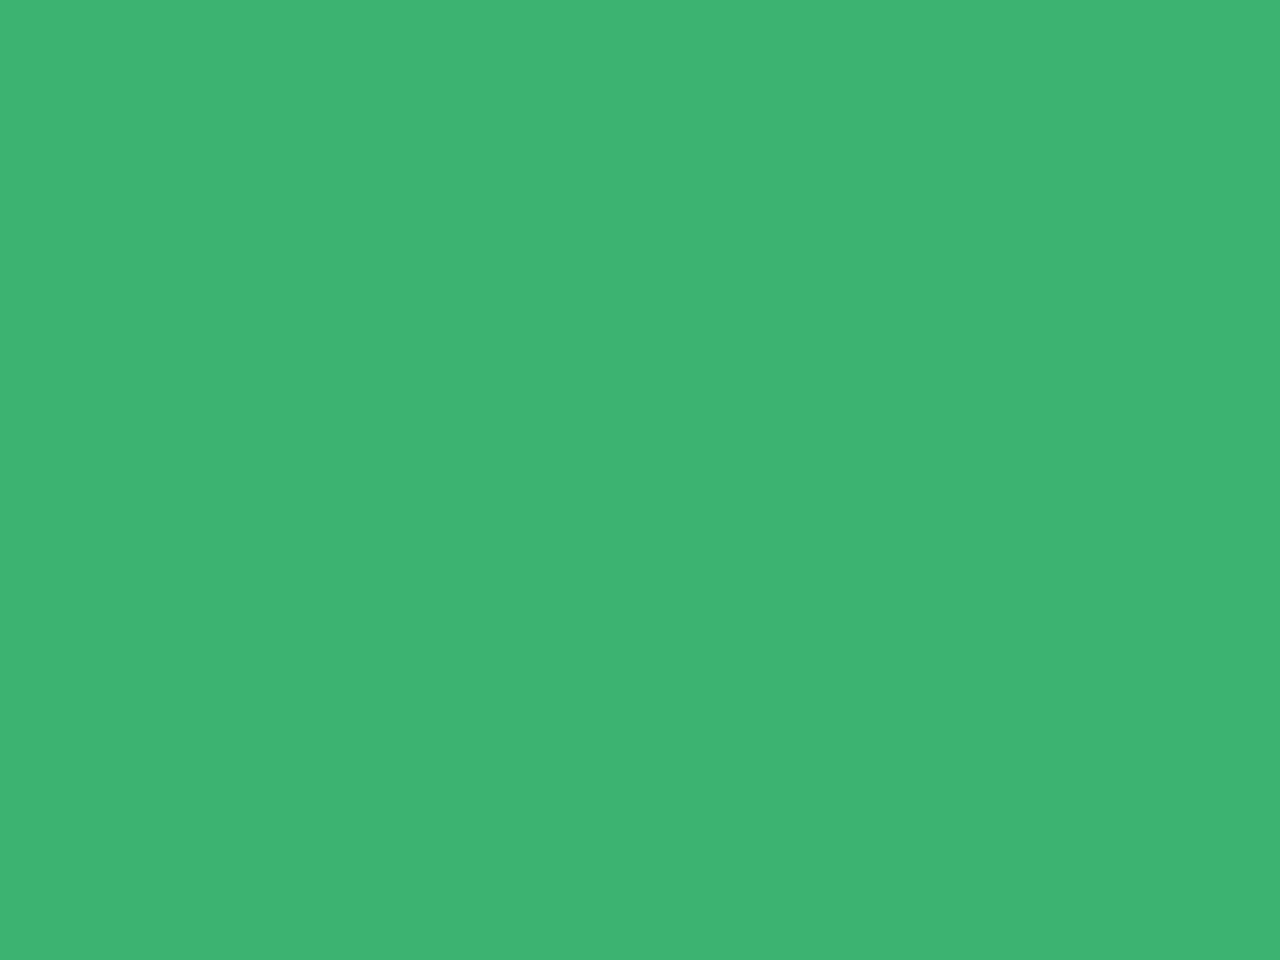 1280x960 Medium Sea Green Solid Color Background